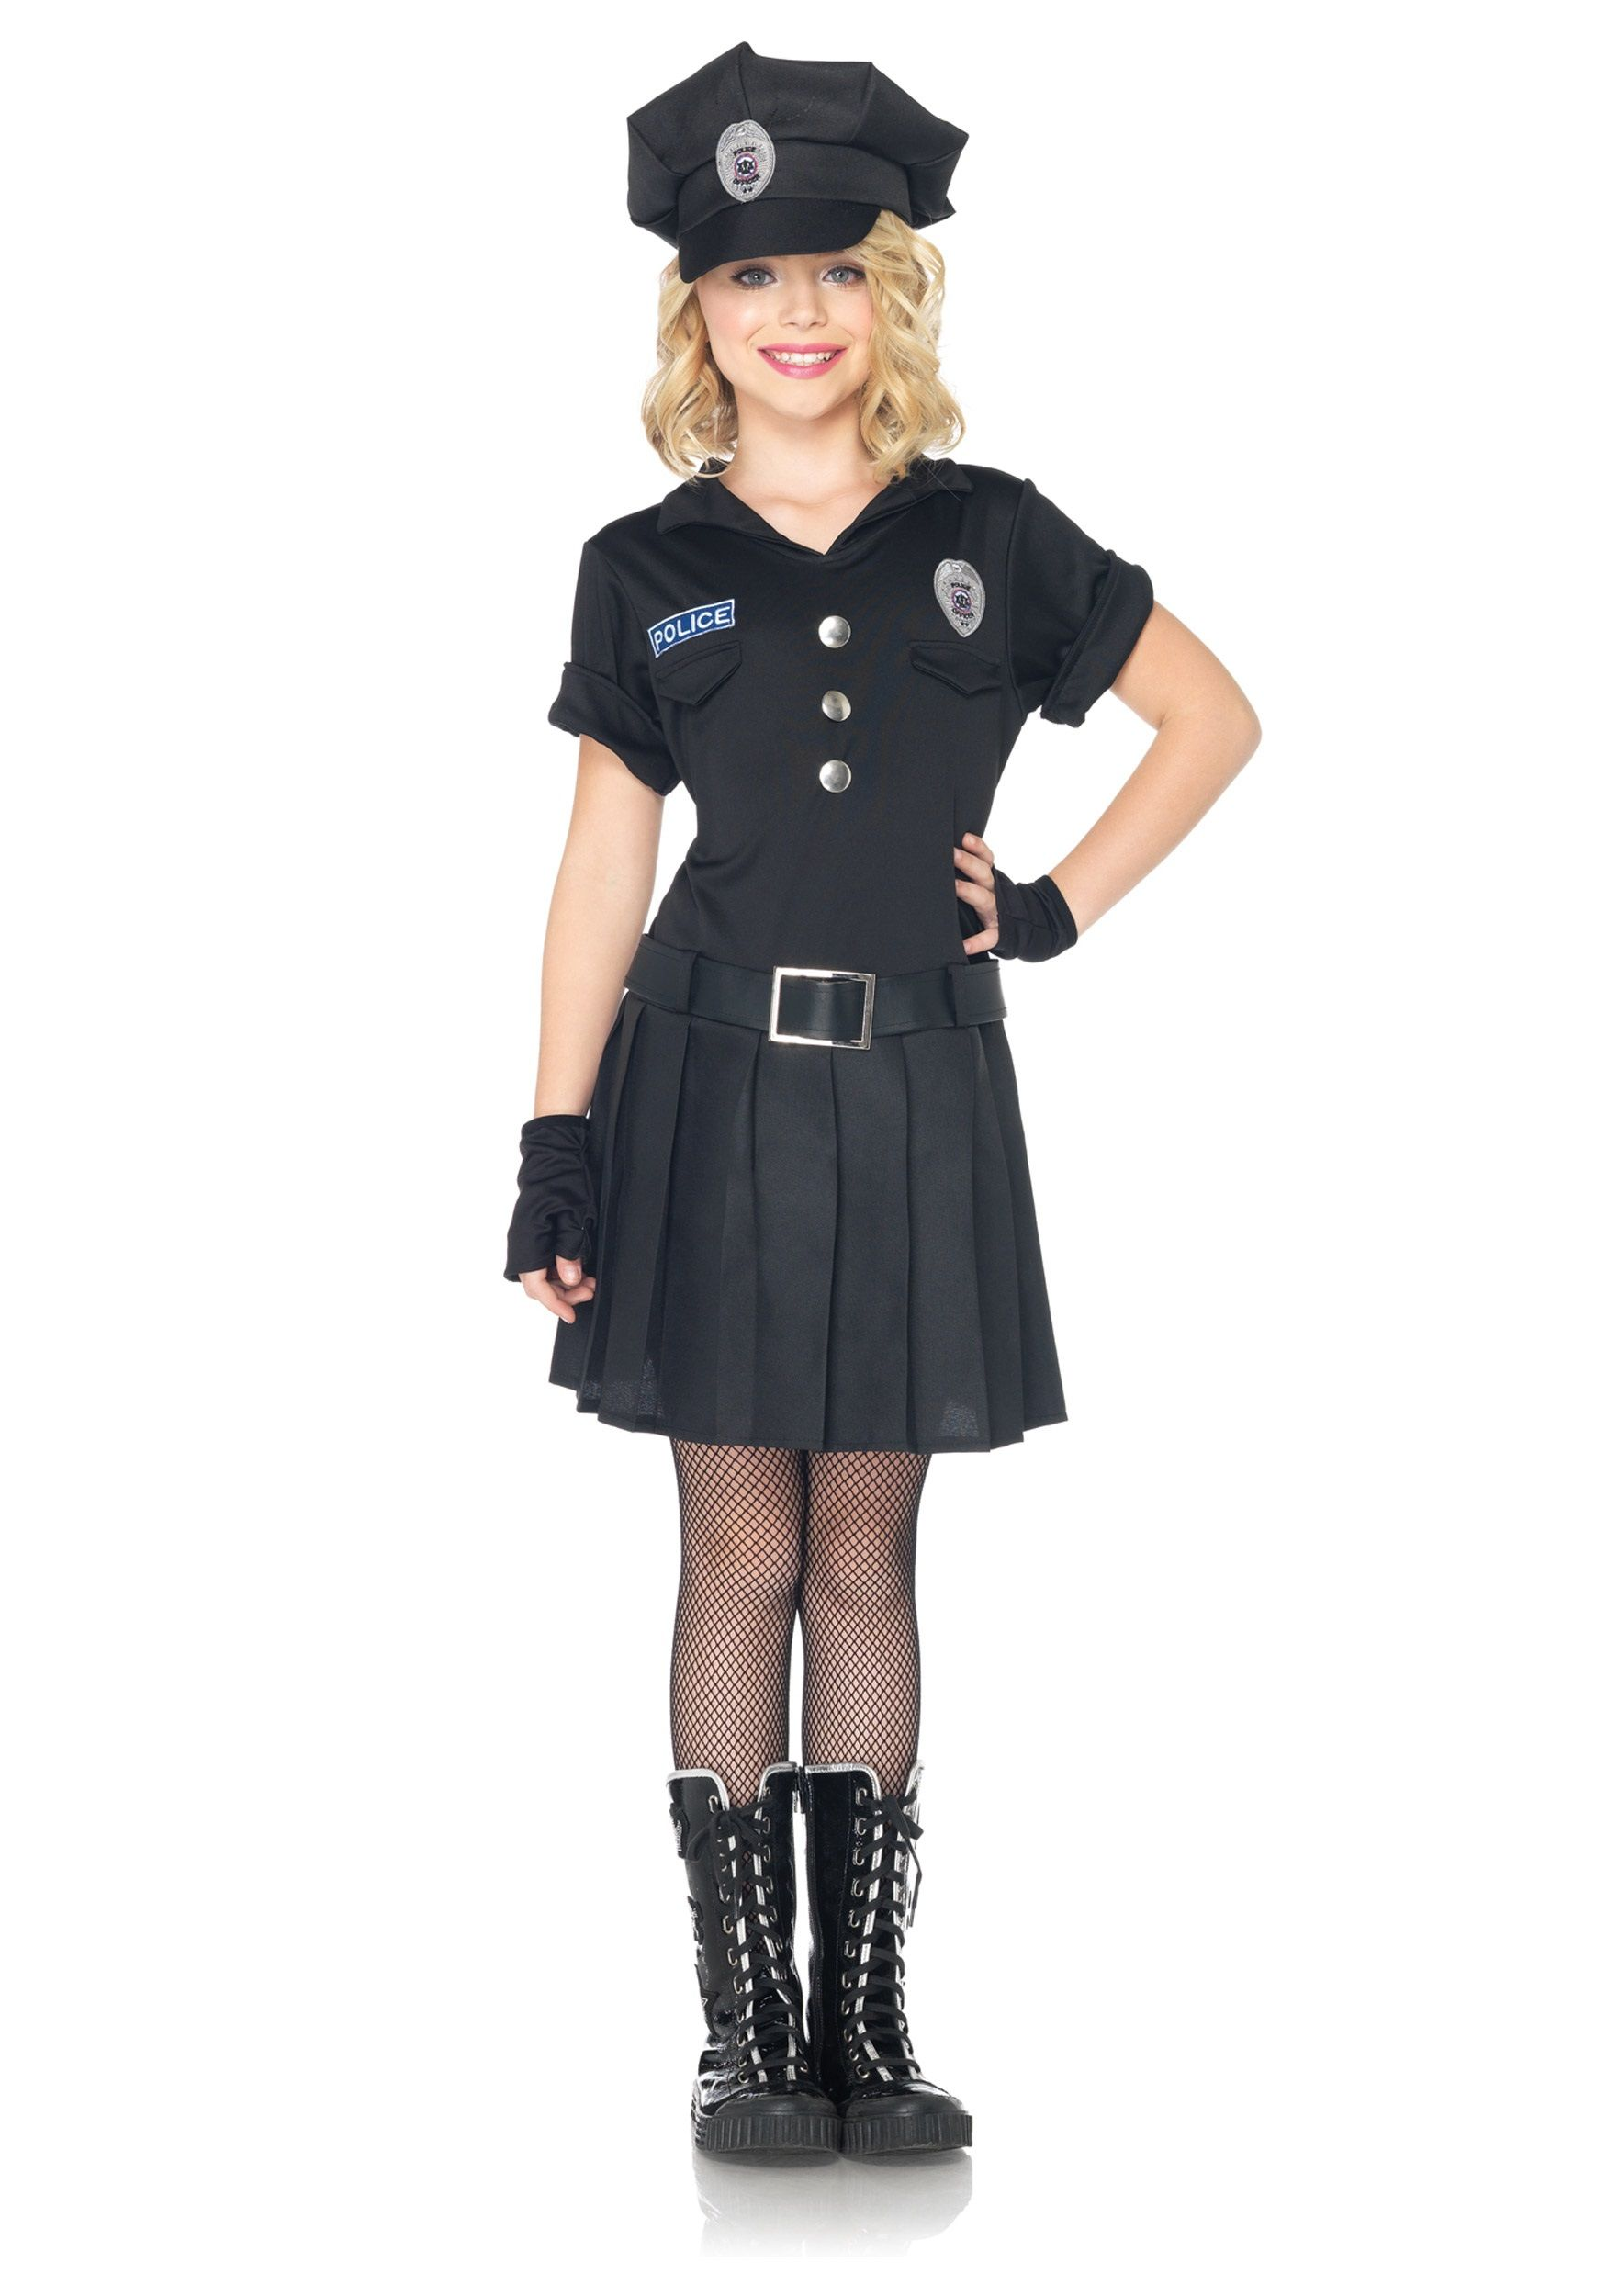 keep the streets safe with this girls playtime police costume this affordable cop costume for kids makes a fun halloween or even just dress up costume - Girls Cop Halloween Costume